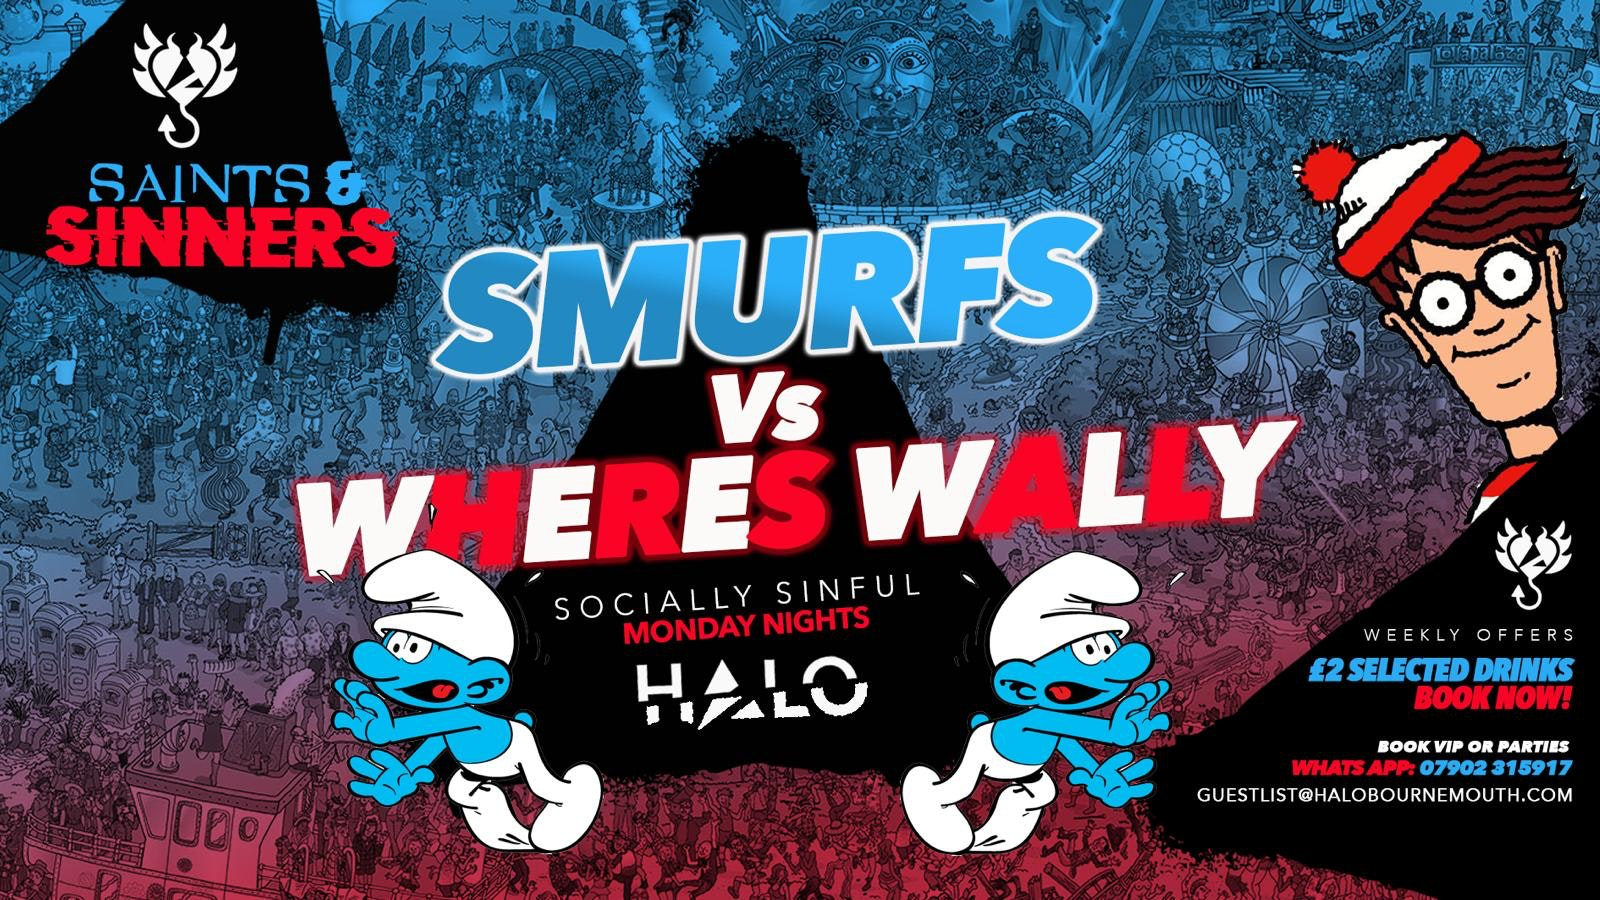 Halo Mondays Where's Wally vs Smurfs – 28/09 – Saints & Sinners //// Drinks from £1.50 – Bournemouth's Biggest Student Night // Bournemouth Freshers